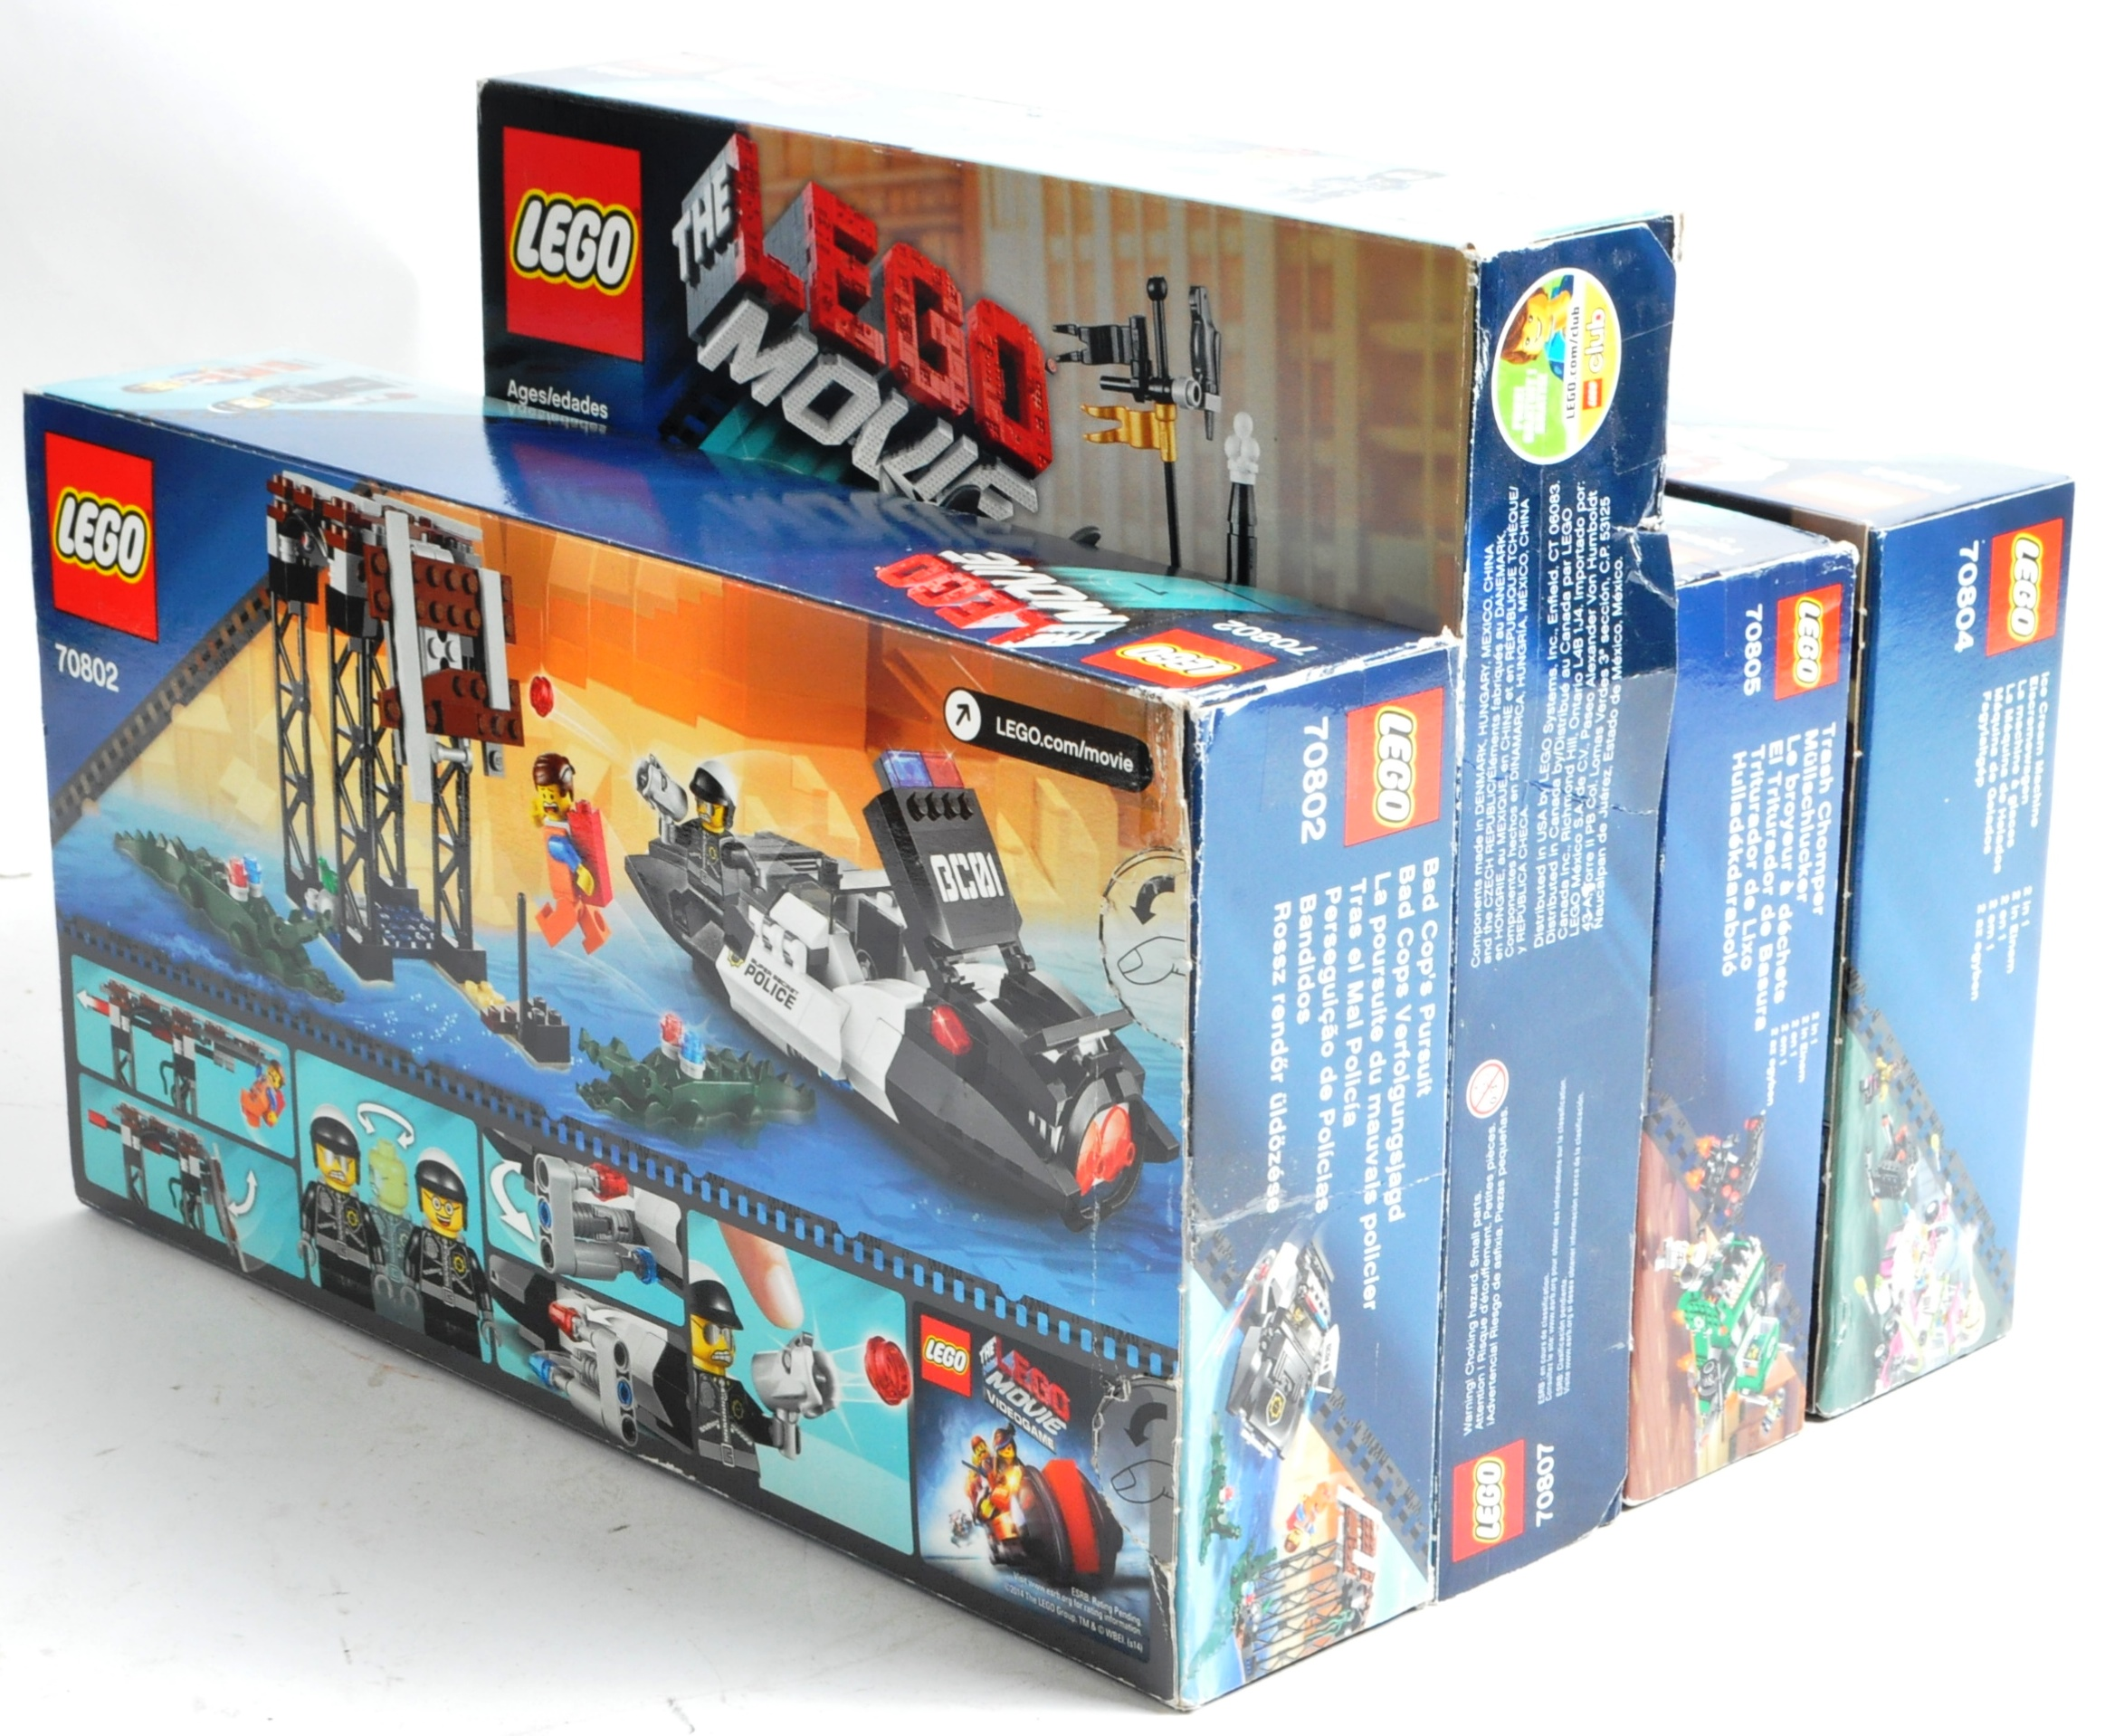 LEGO SETS - THE LEGO MOVIE - COLLECTION OF X7 LEGO MOVIE SETS - Image 17 of 17